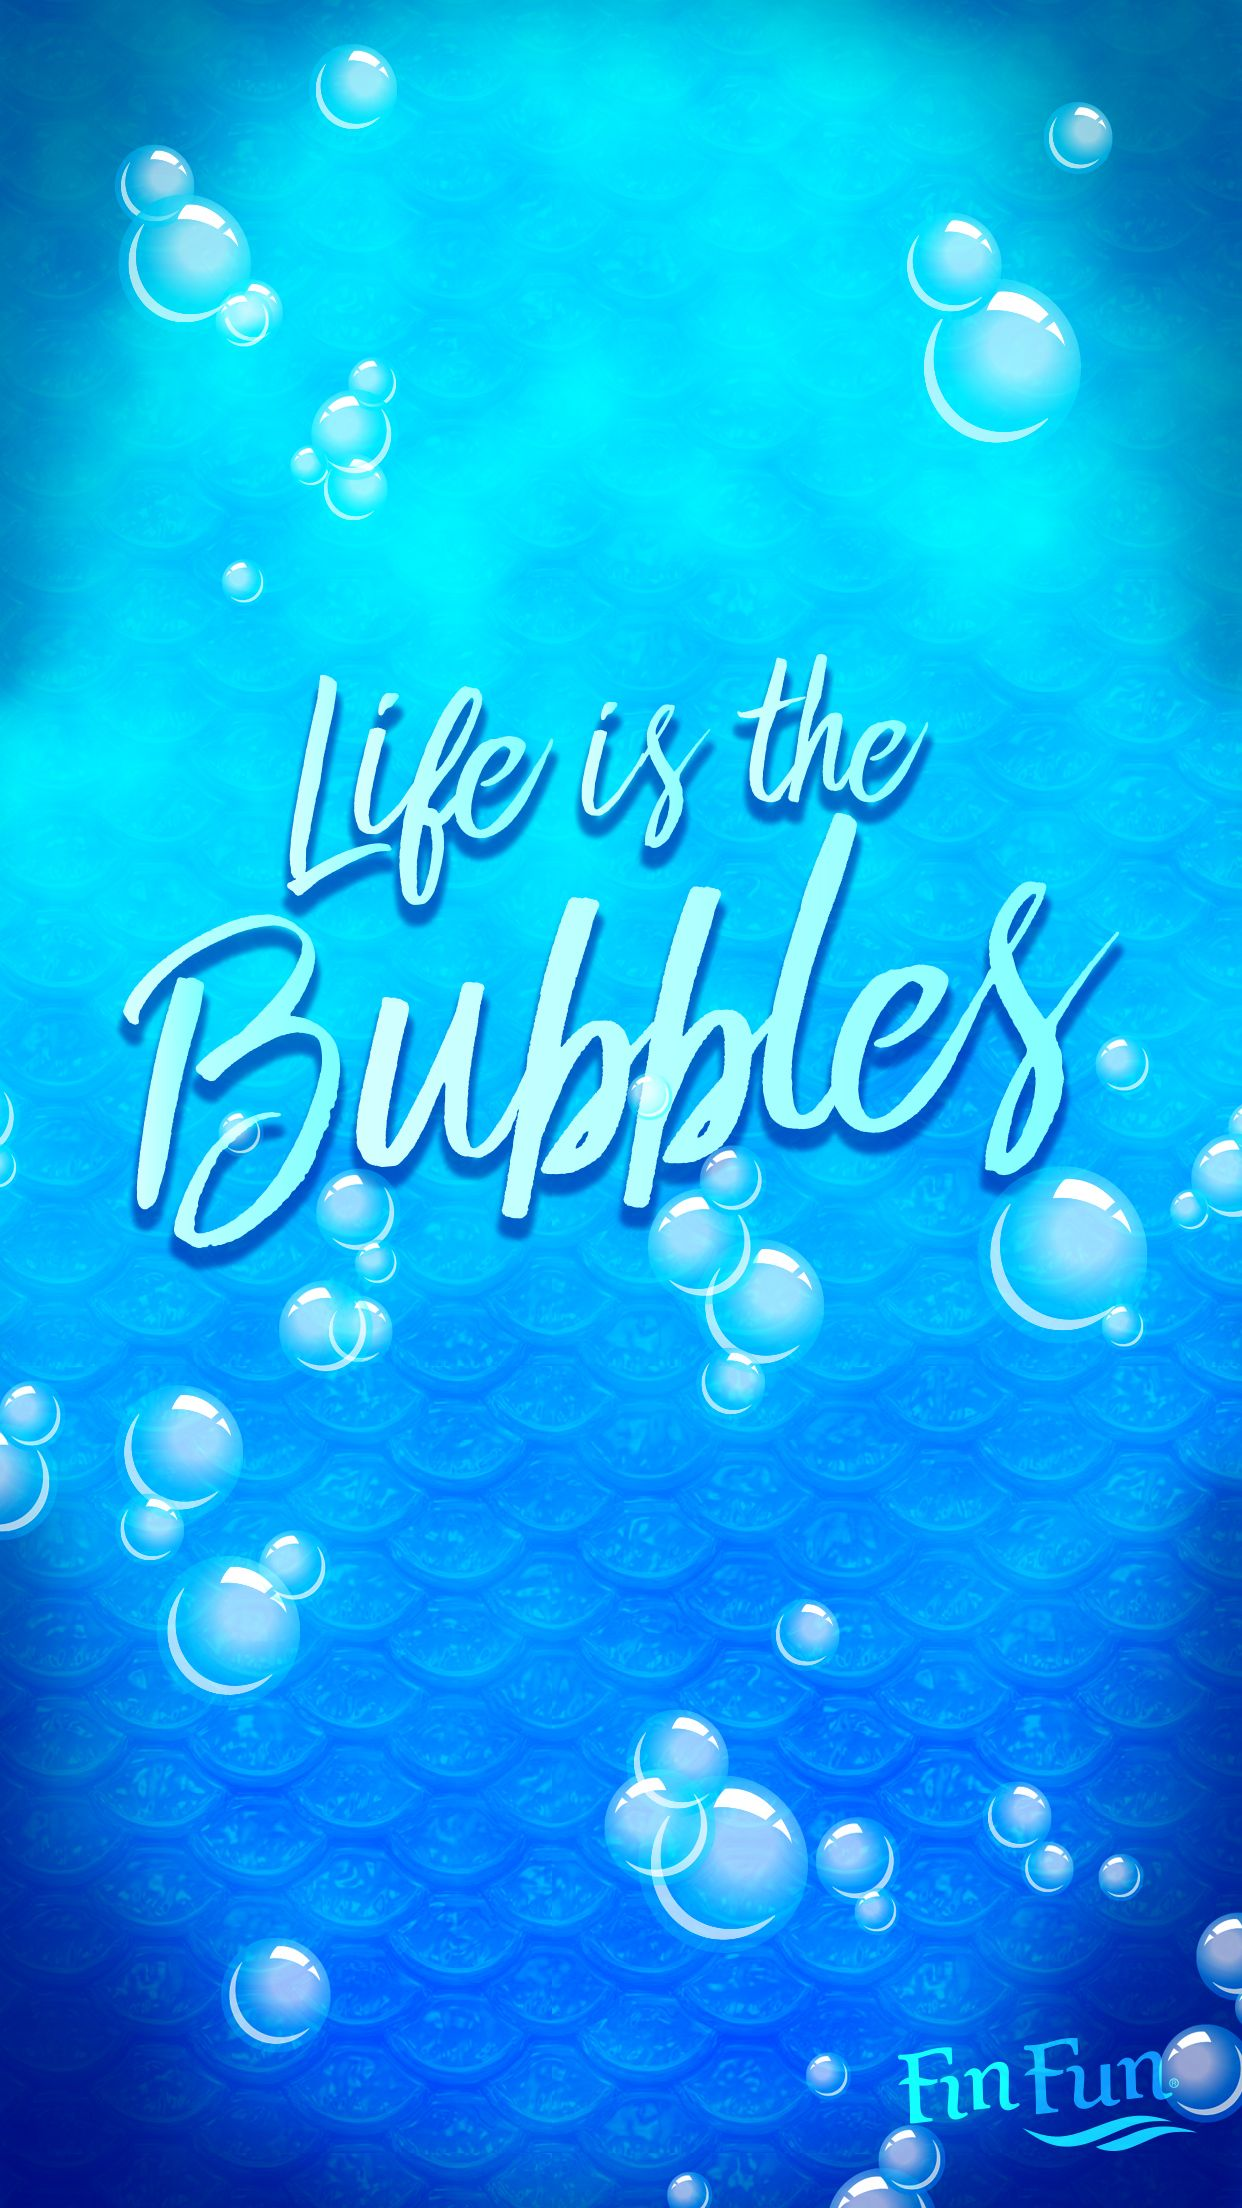 """Life is in the bubbles"" mermaid wallpaper for your phone"